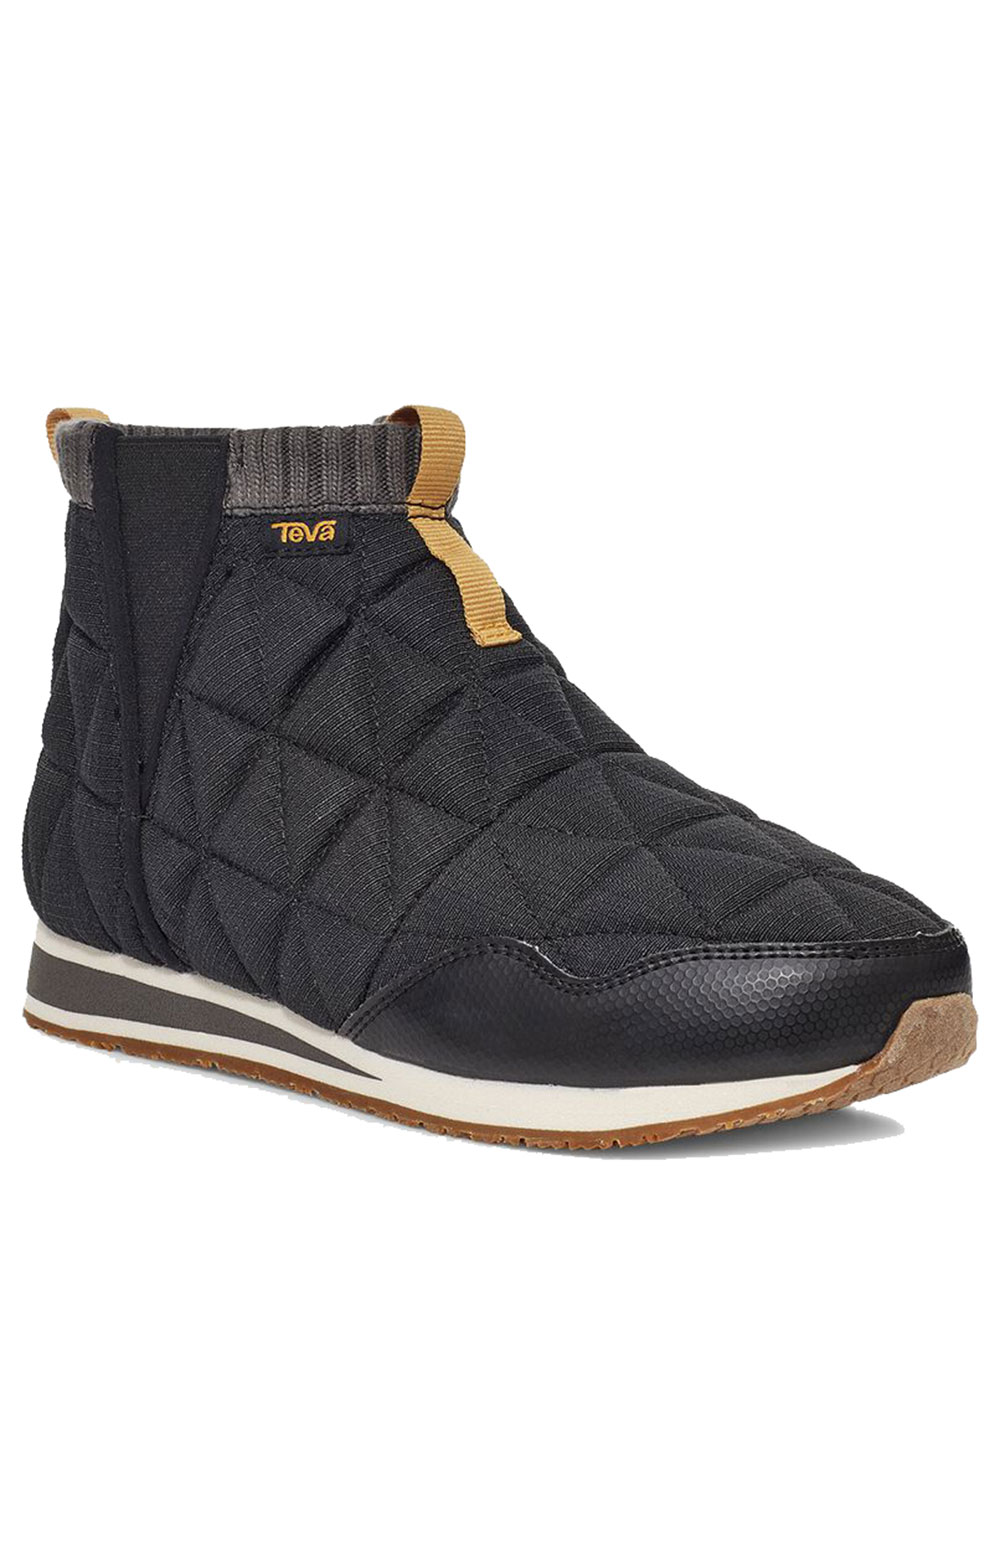 (1123431) ReEMBER Mid Shoes - Black 2